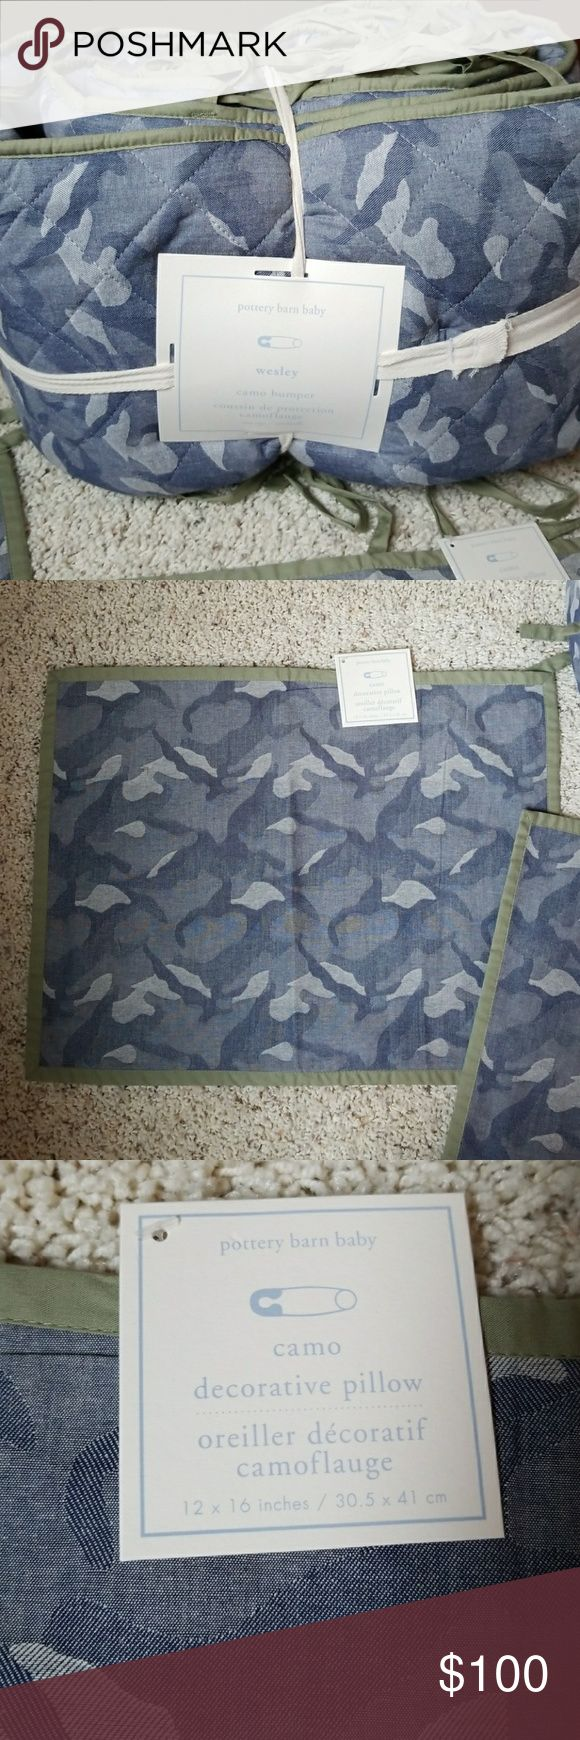 Pottery Barn Wesley Blue Camo Crib Set NEW Pottery Barn Baby Wesley  Blue Camo Crib Set  New Two decorative pillow cases One crib skirt One crib bumper One green quilt 36 x 50 inches  All new  Thanks for looking and happy shopping! Pottery Barn Other